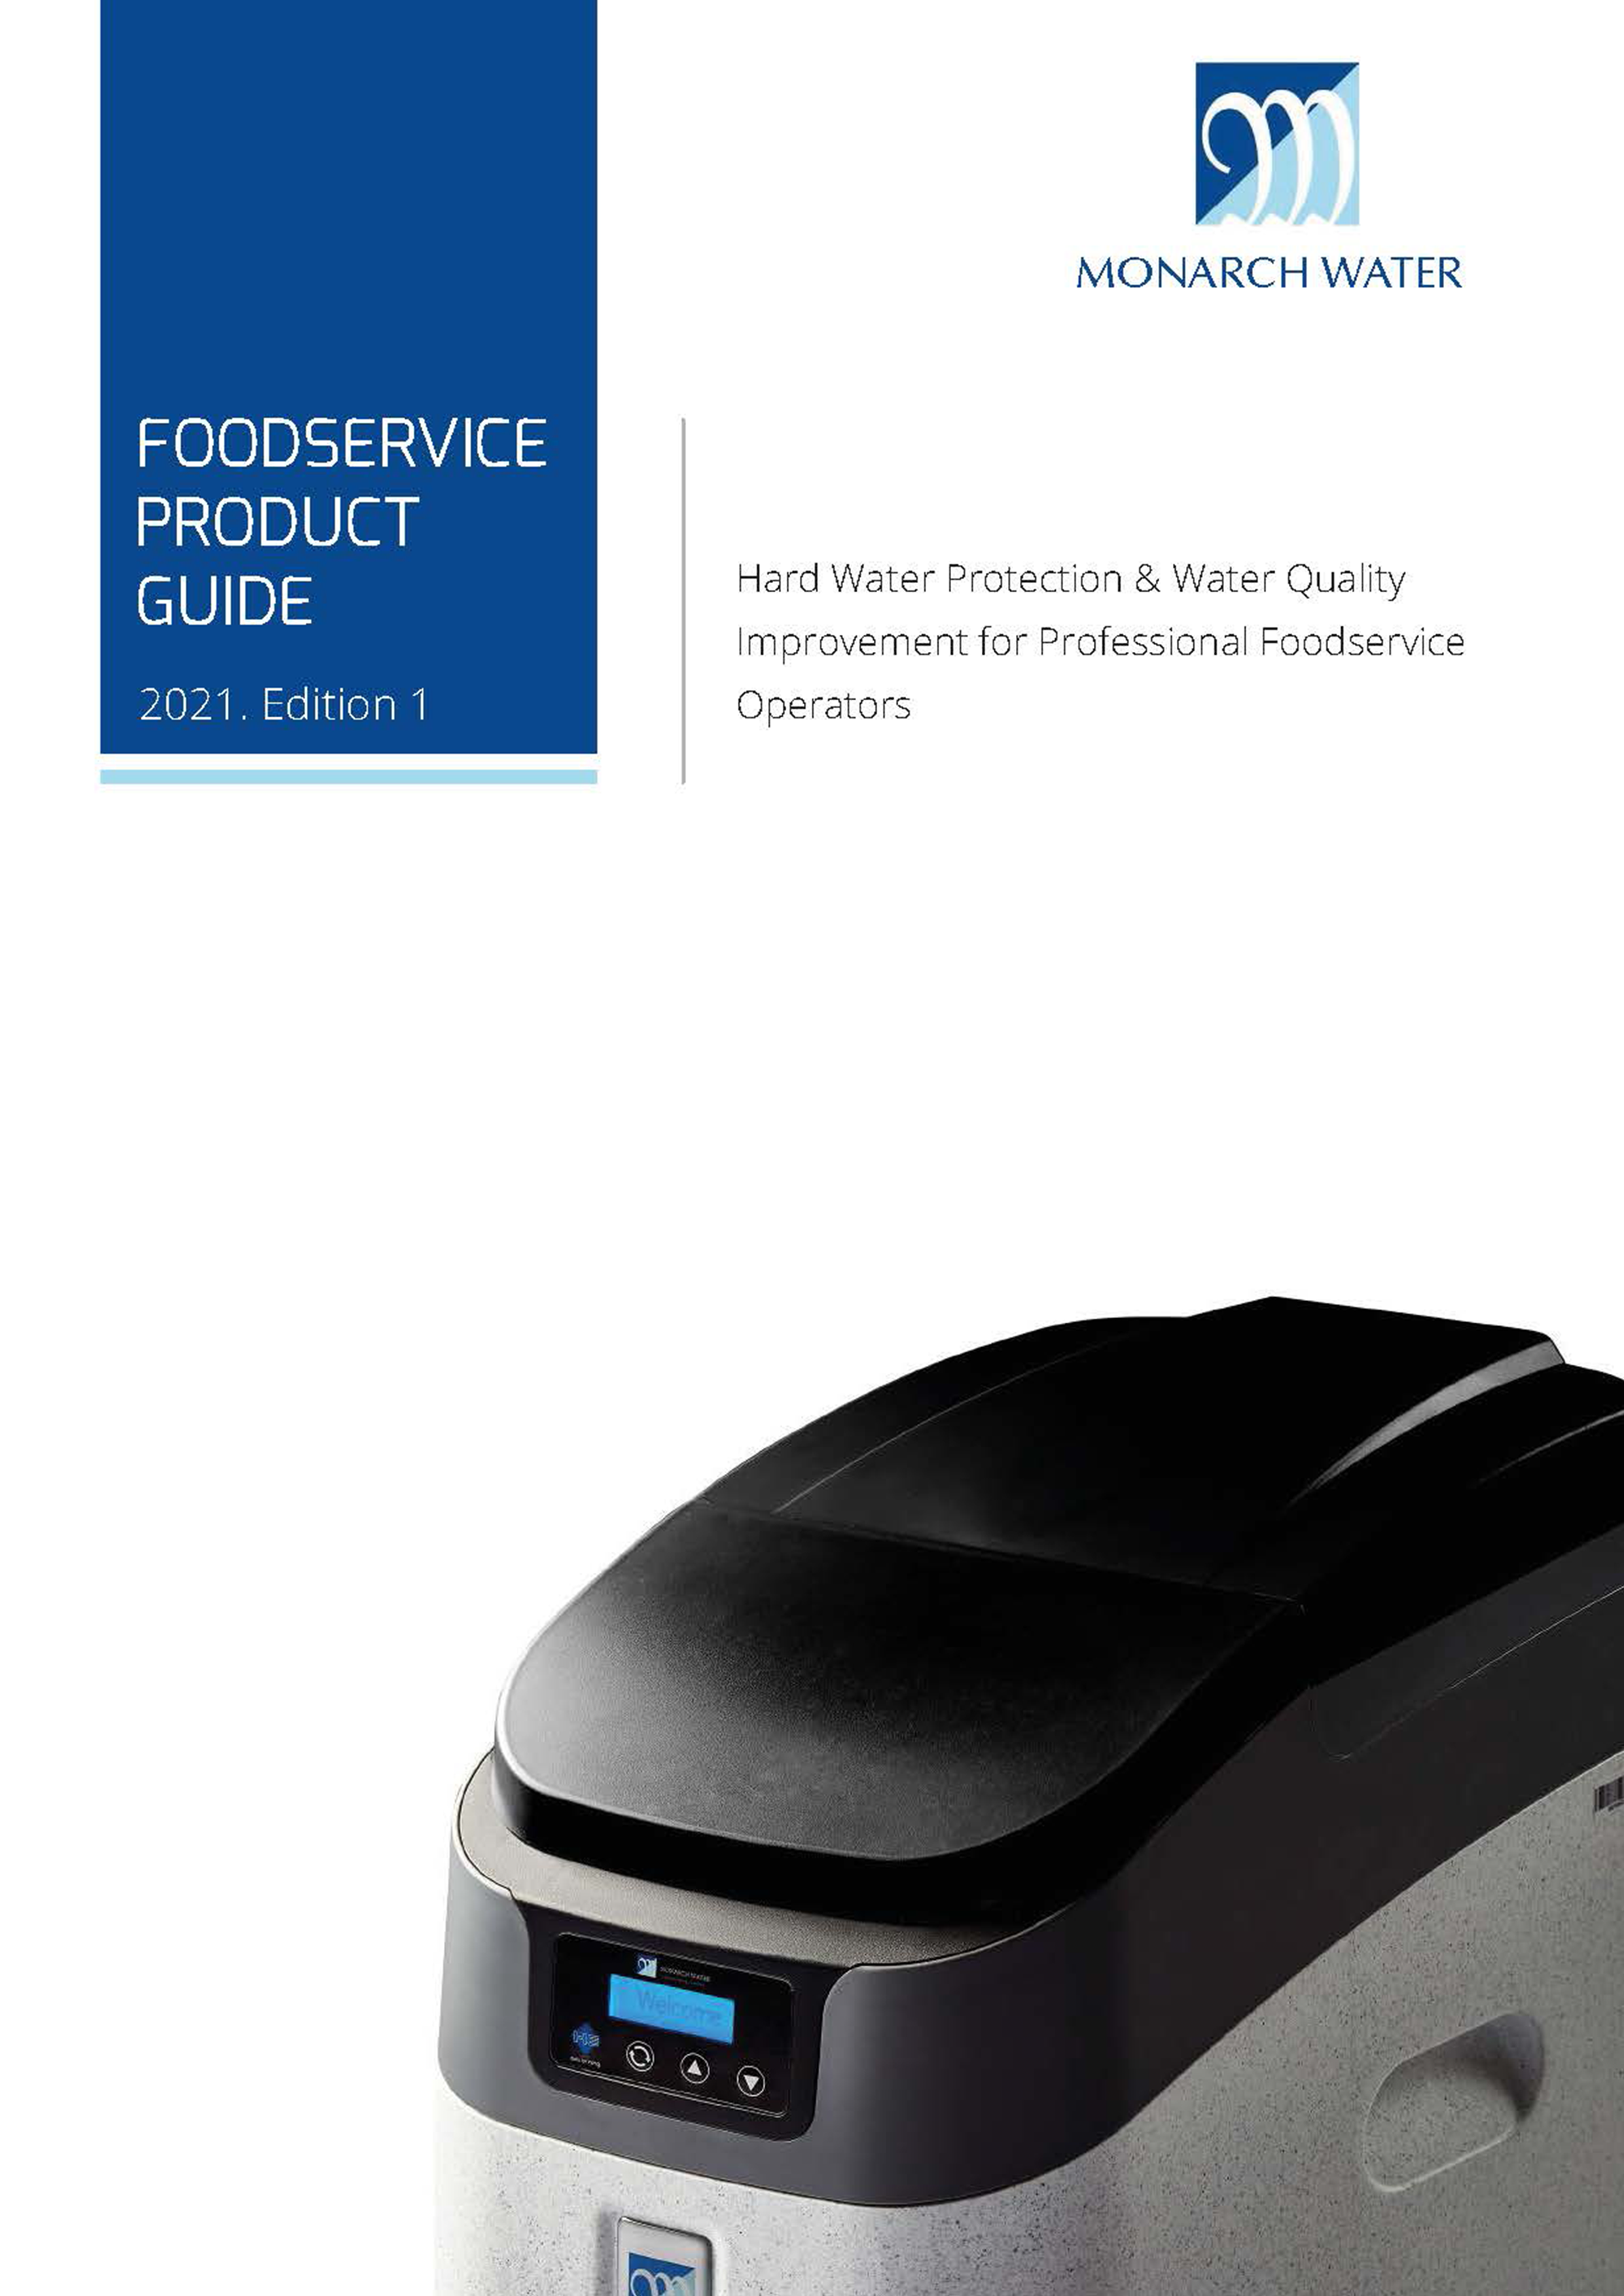 Monarch Water Foodservice Guide